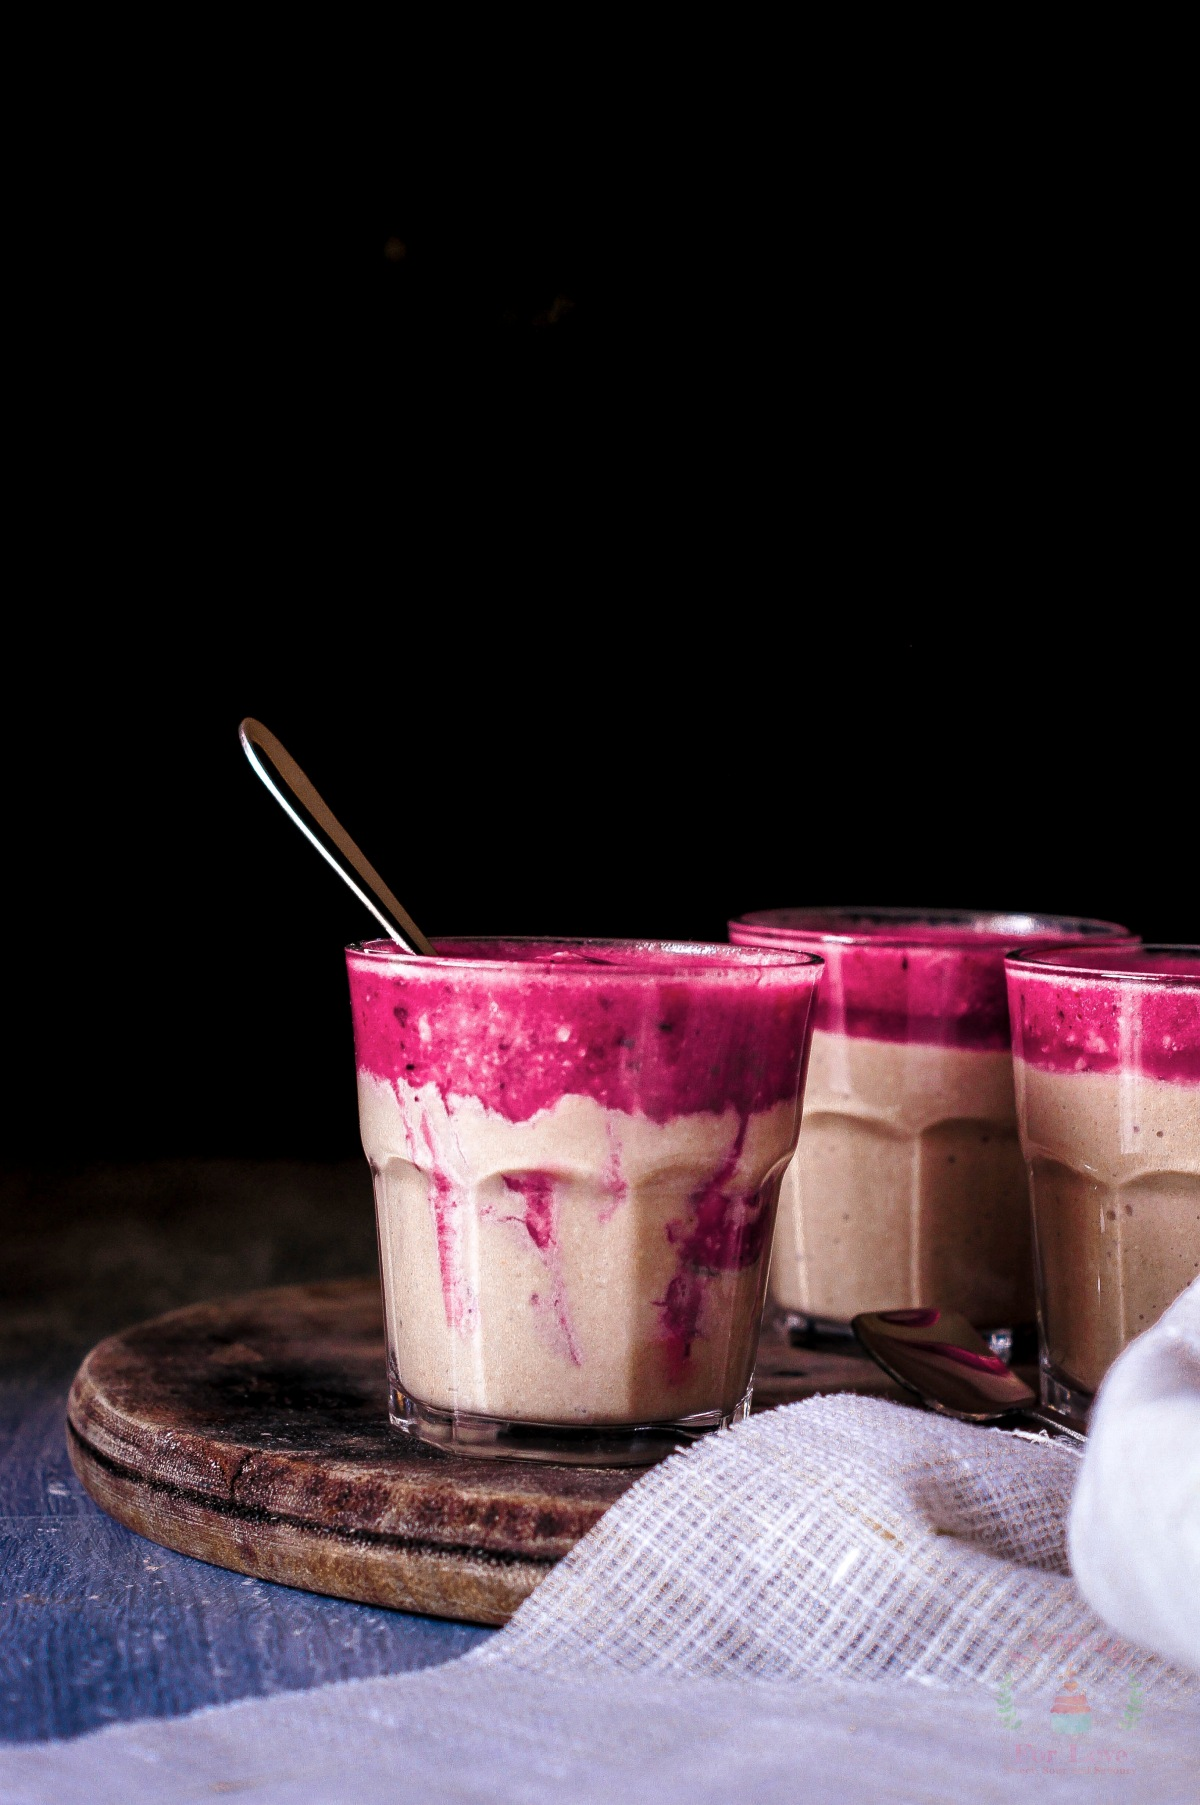 Sweet and Sour Smoothie – Chikku, Banana, Raisin Smoothie with Pomegranate and Grape